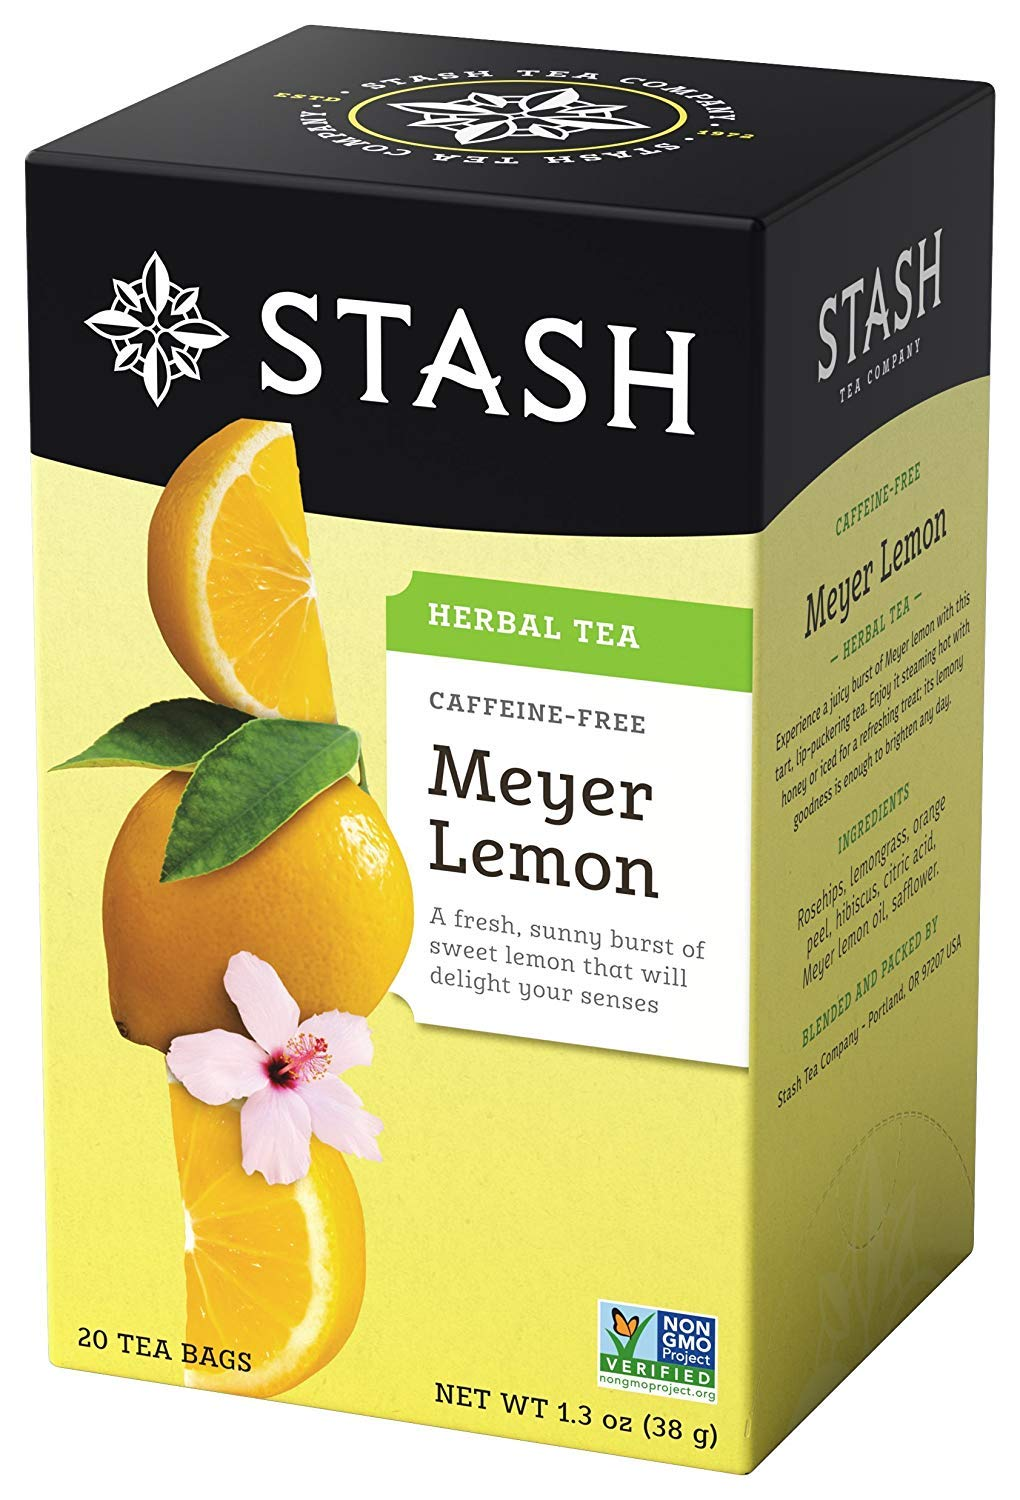 Stash Tea Meyer Lemon Herbal Tea 20 Count Tea Bags in Foil (Pack of 6) (Packaging May Vary) Individual Herbal Tea Bags for Use in Teapots Mugs or Cups